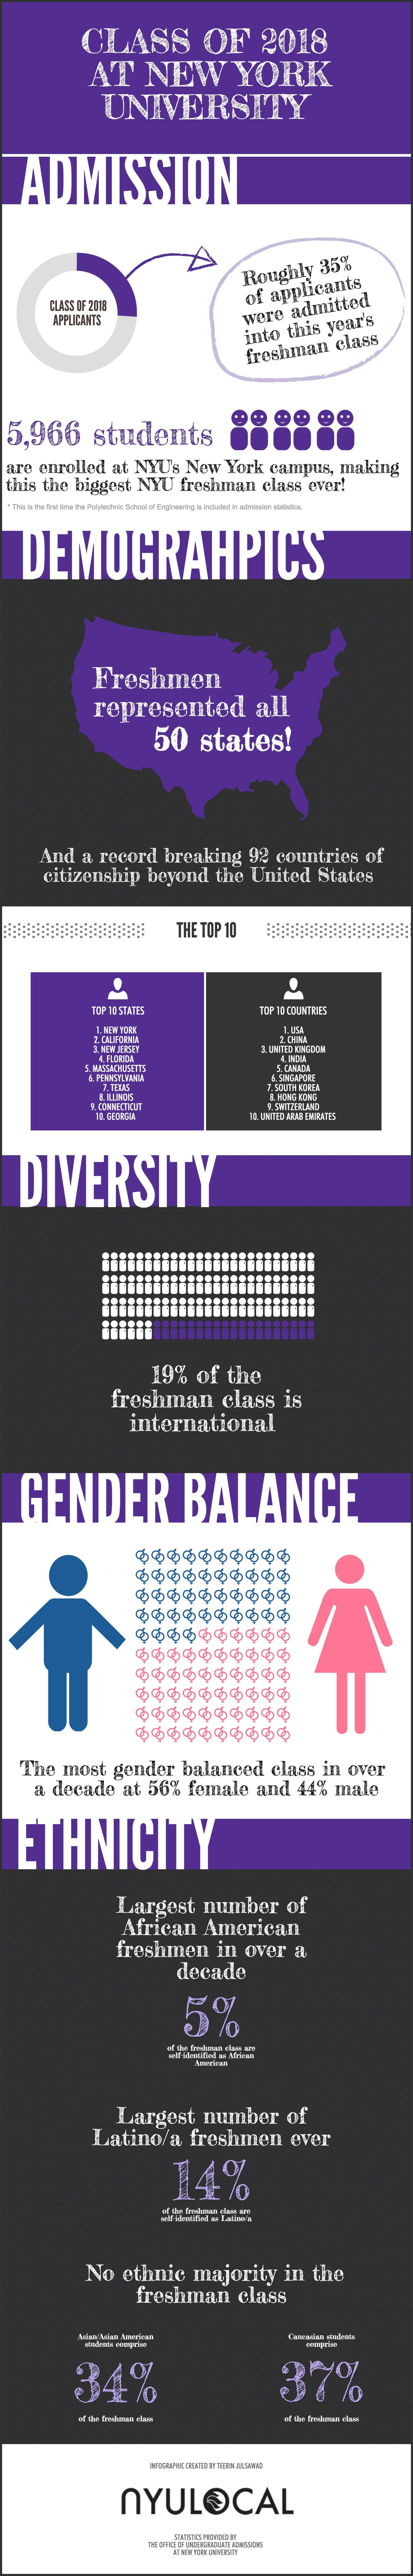 The Class Of 2018 By The Numbers [INFOGRAPHIC] - NYU Local